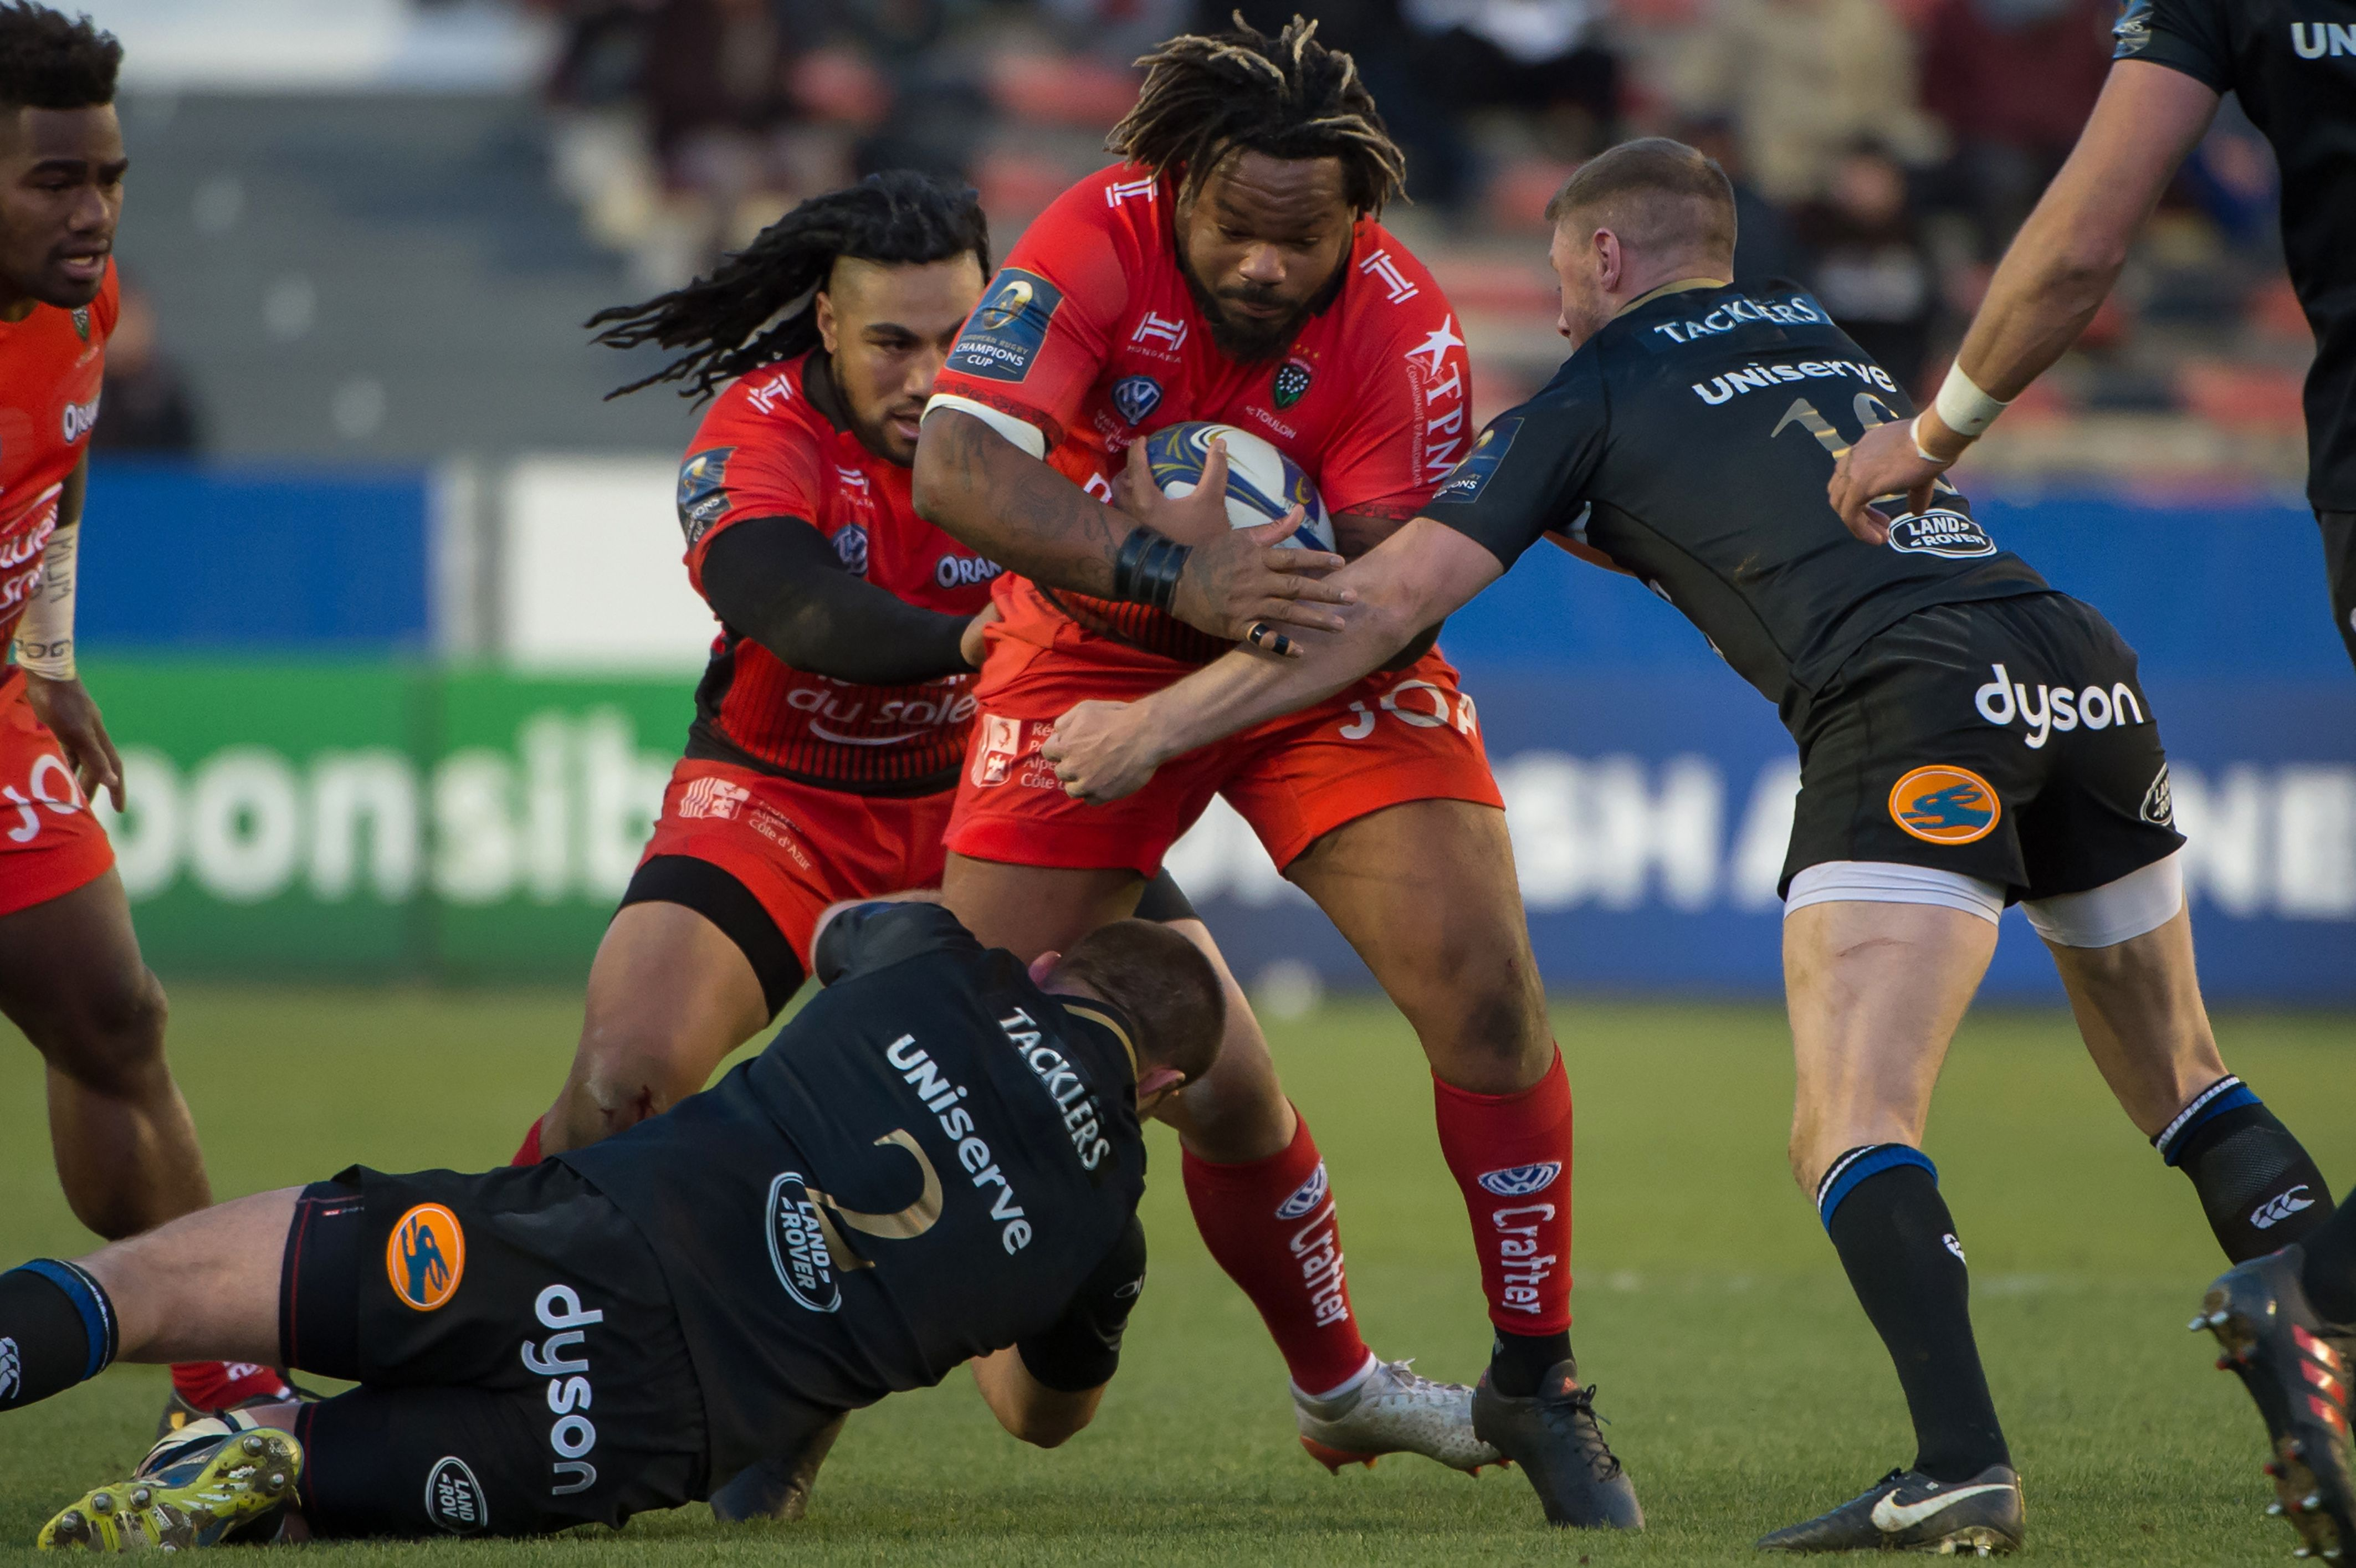 Coupe europe rugby toulon bath - Coupe d europe de rugby classement ...